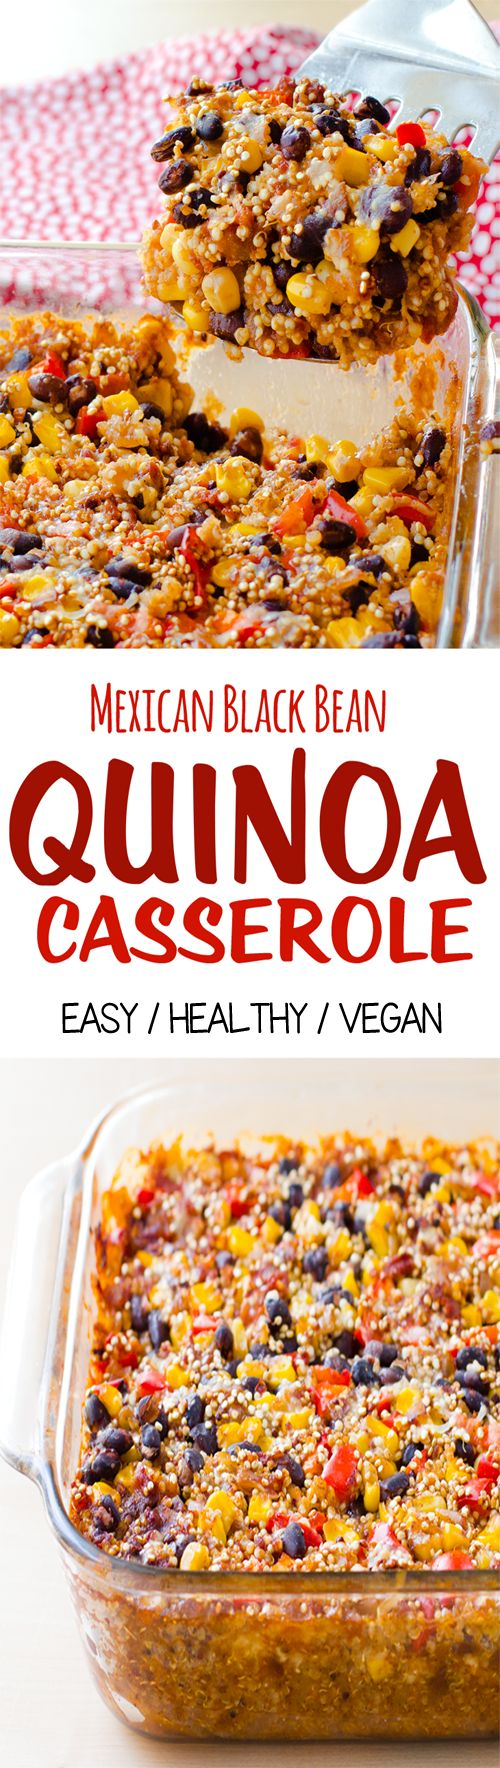 Mexican Black Bean Quinoa Casserole, a.k.a. comfort food for vegans!